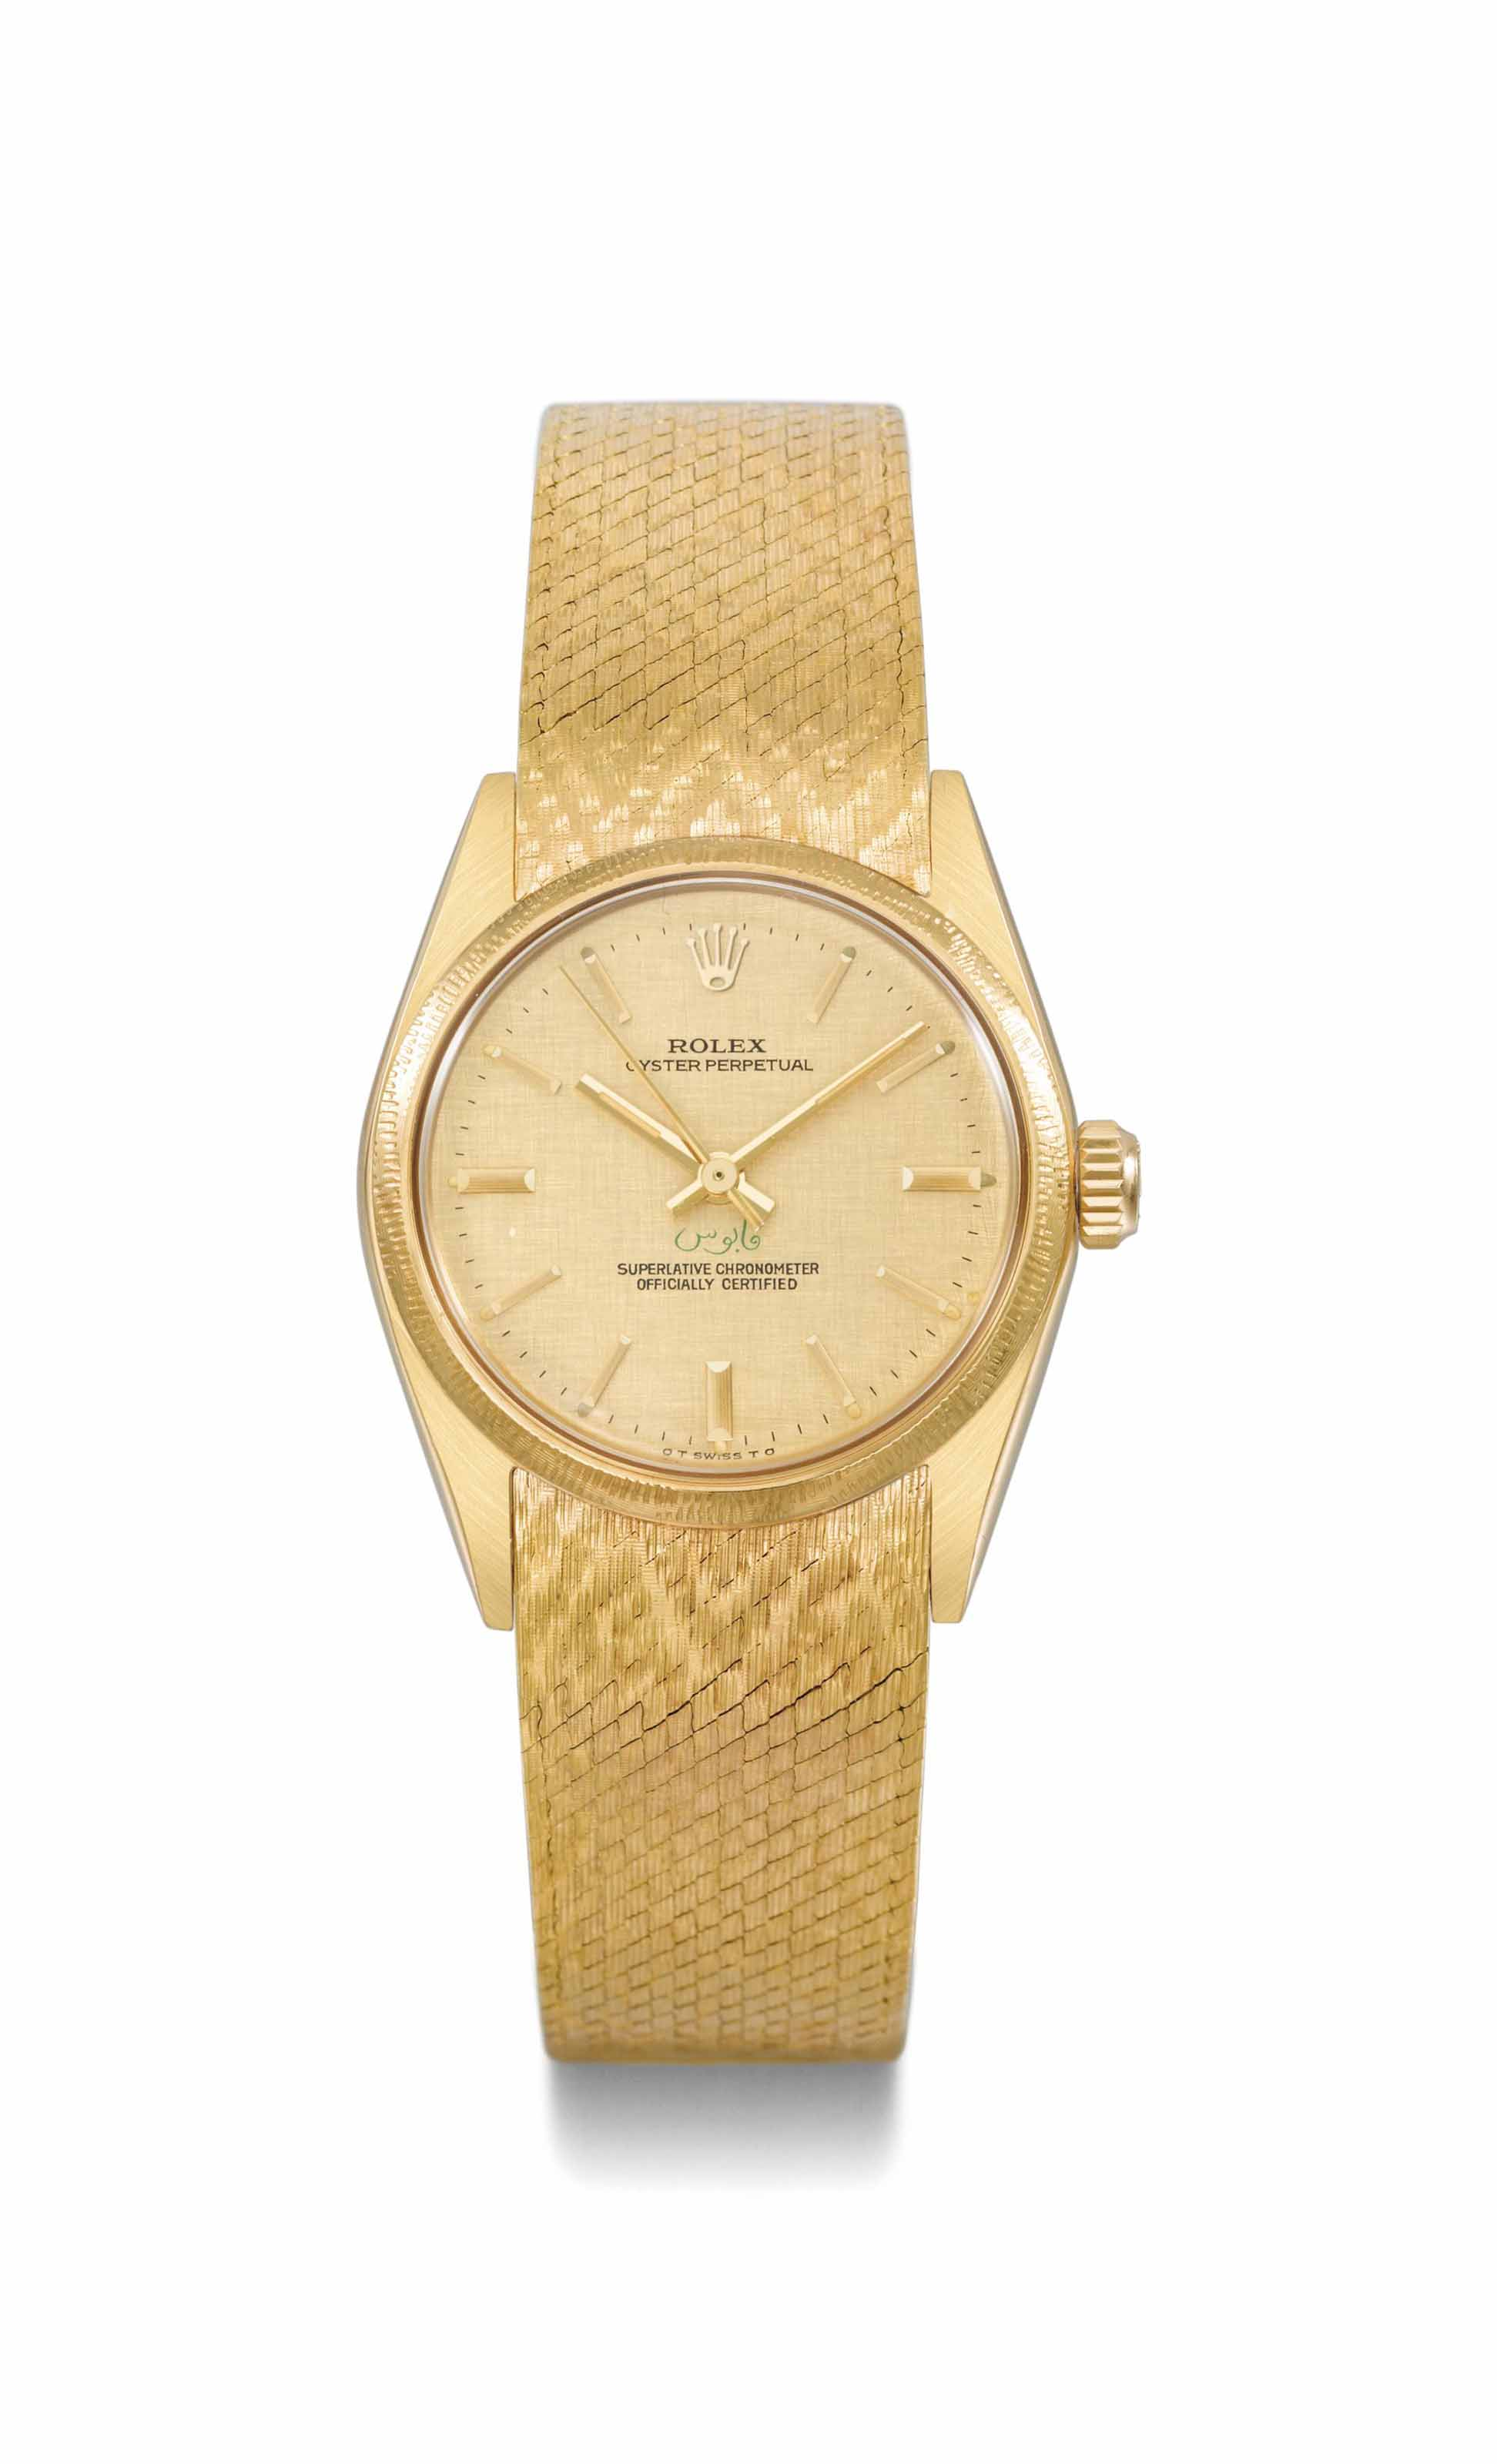 Rolex. A fine, attractive and very rare 18K gold automatic wristwatch with centre seconds and bracelet, made for the His Majesty, the Sultan of Oman Qaboos Bin Said Al Said